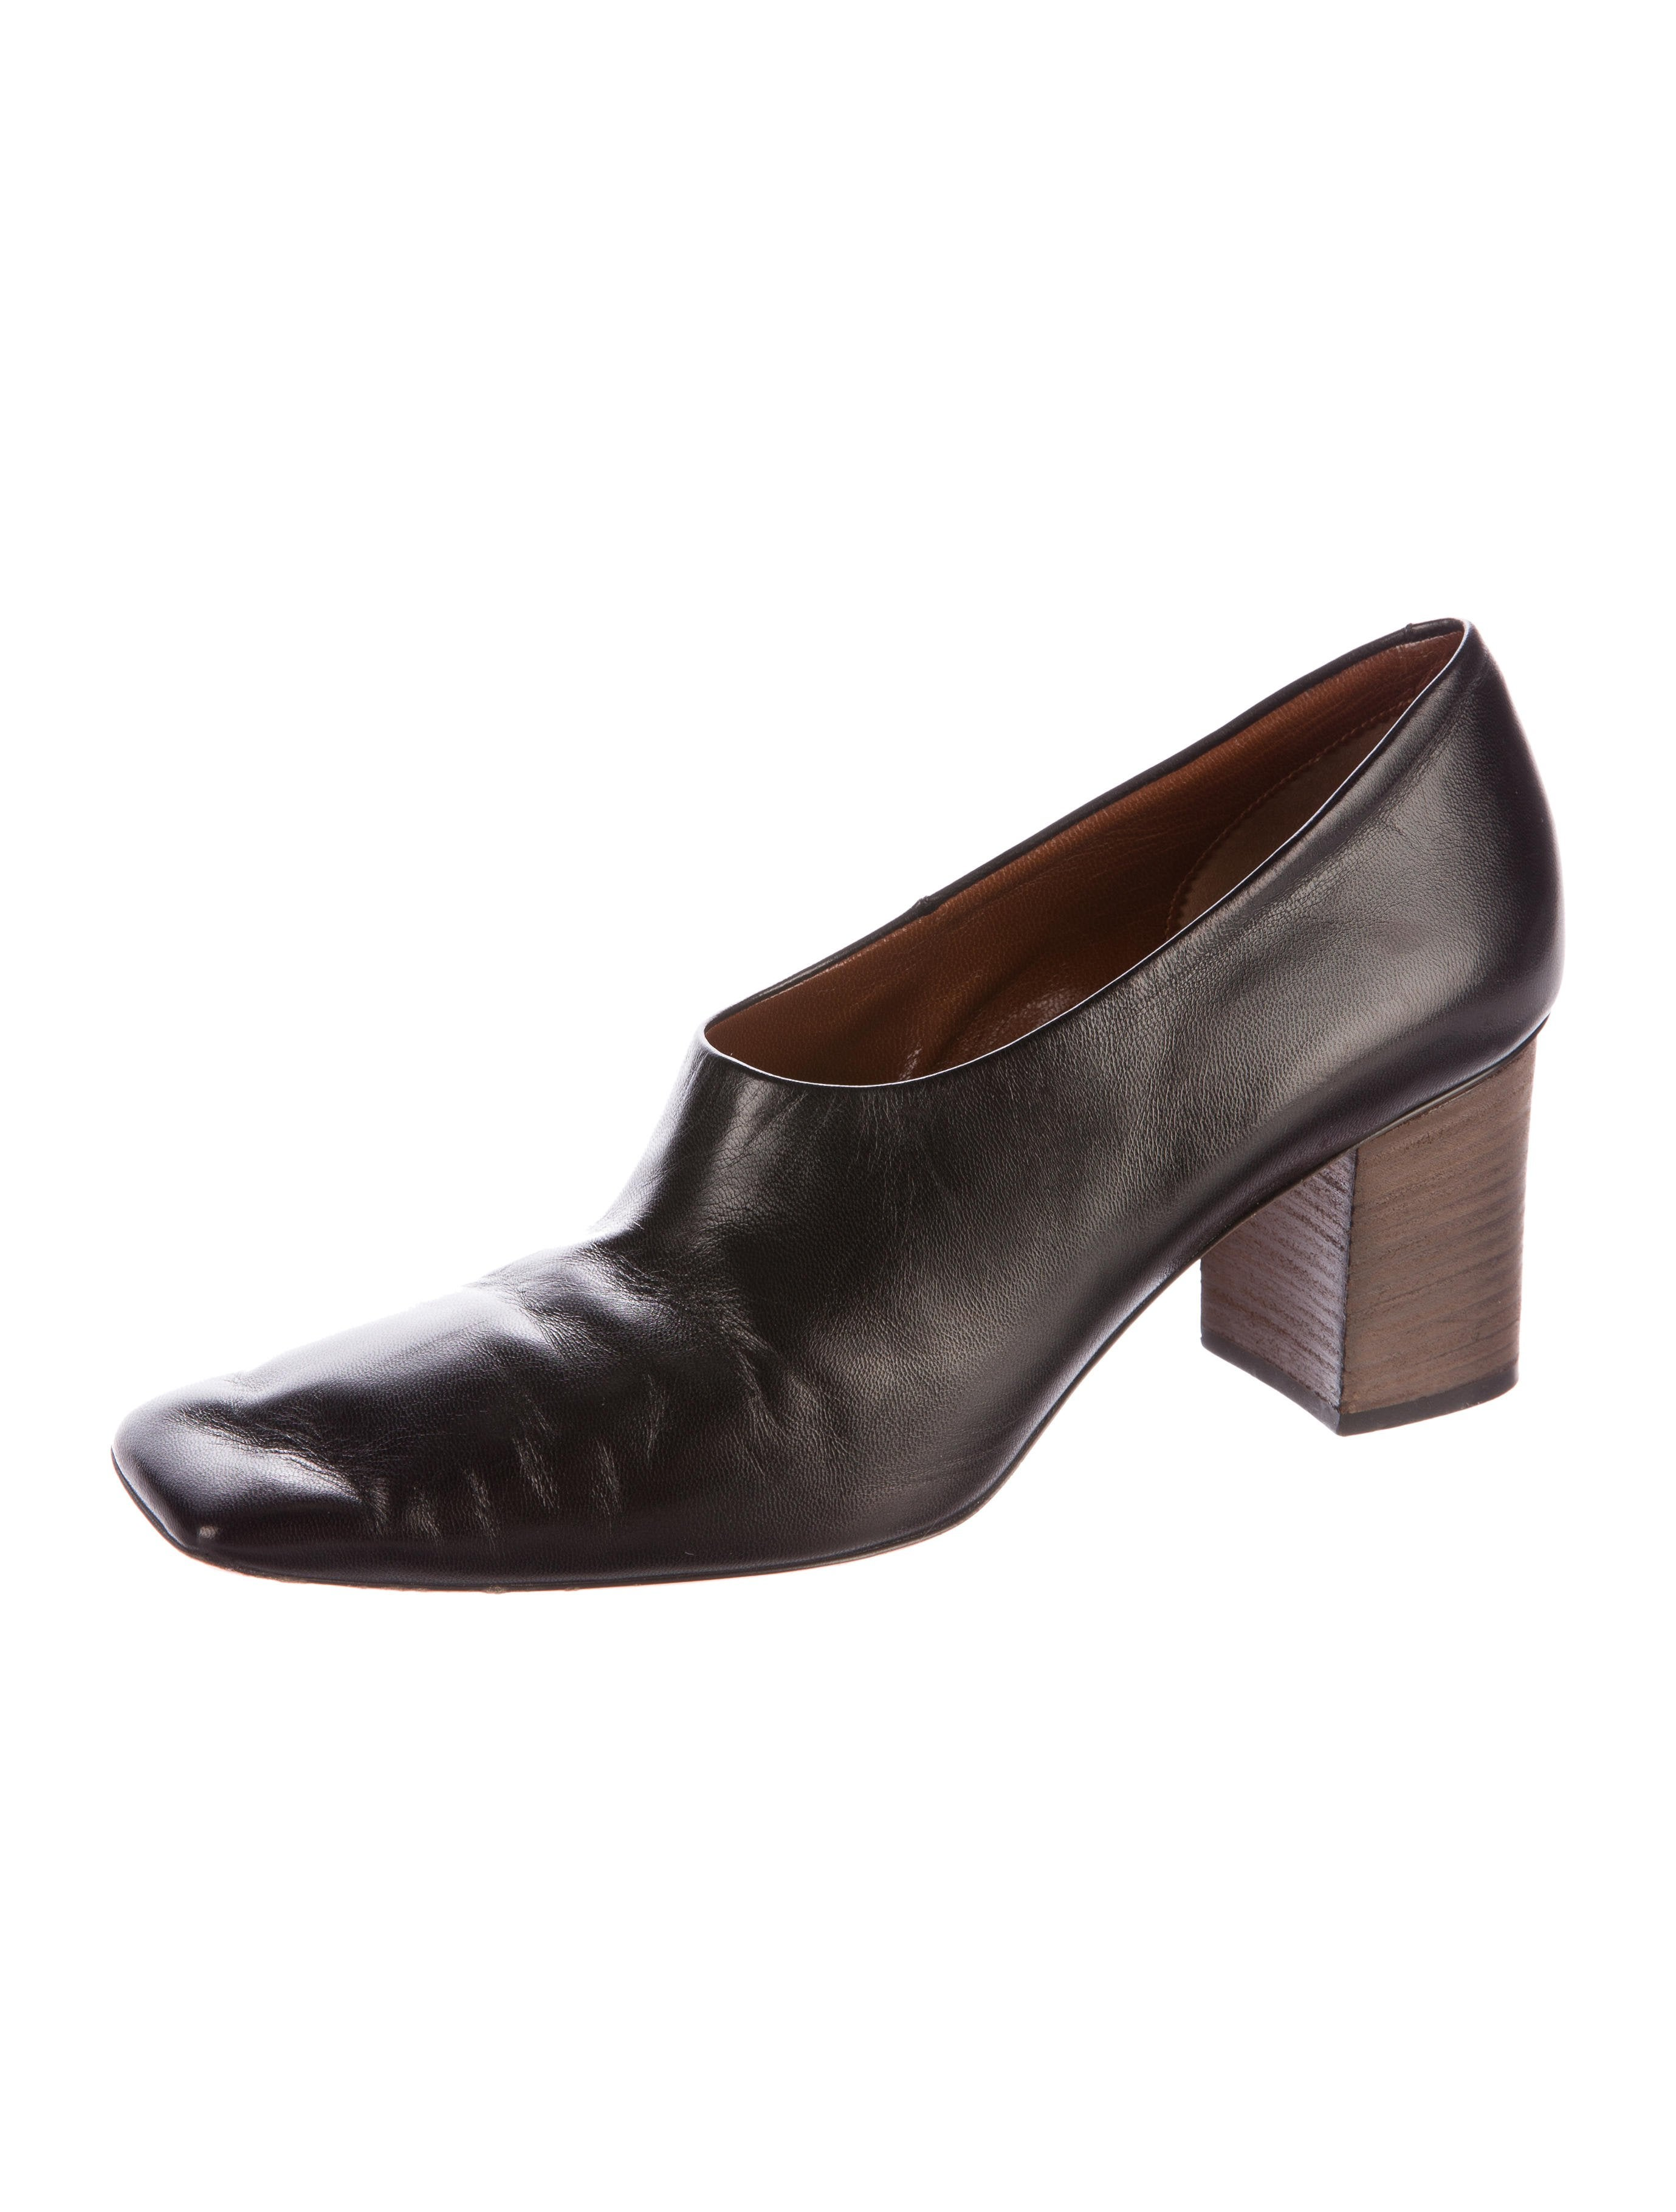 good selling shopping online with mastercard Céline Square-Toe Leather Pumps cheap sale oGp1txc